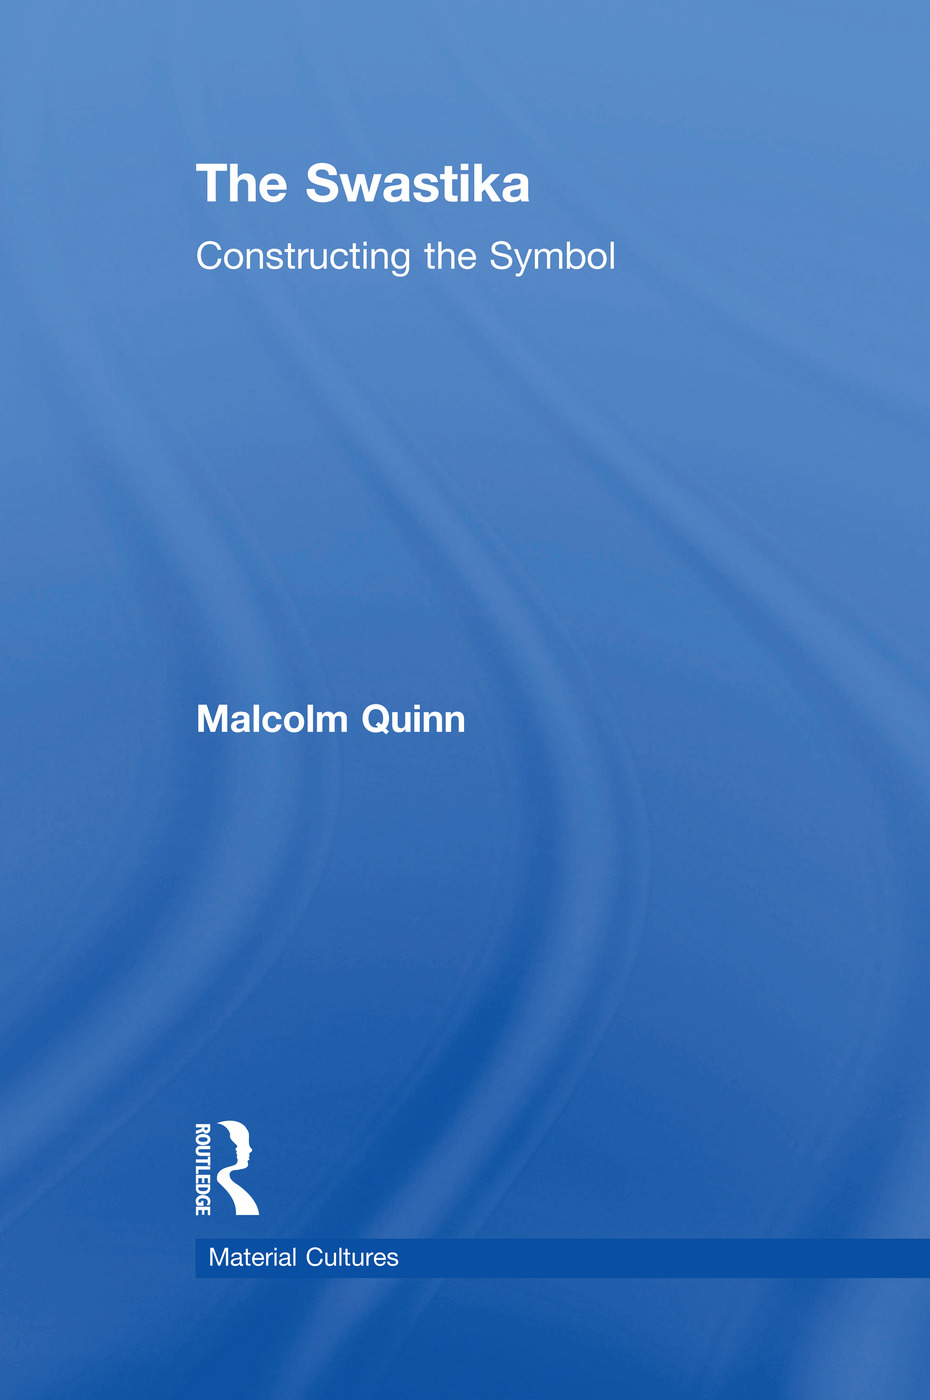 The Swastika: Constructing the Symbol book cover